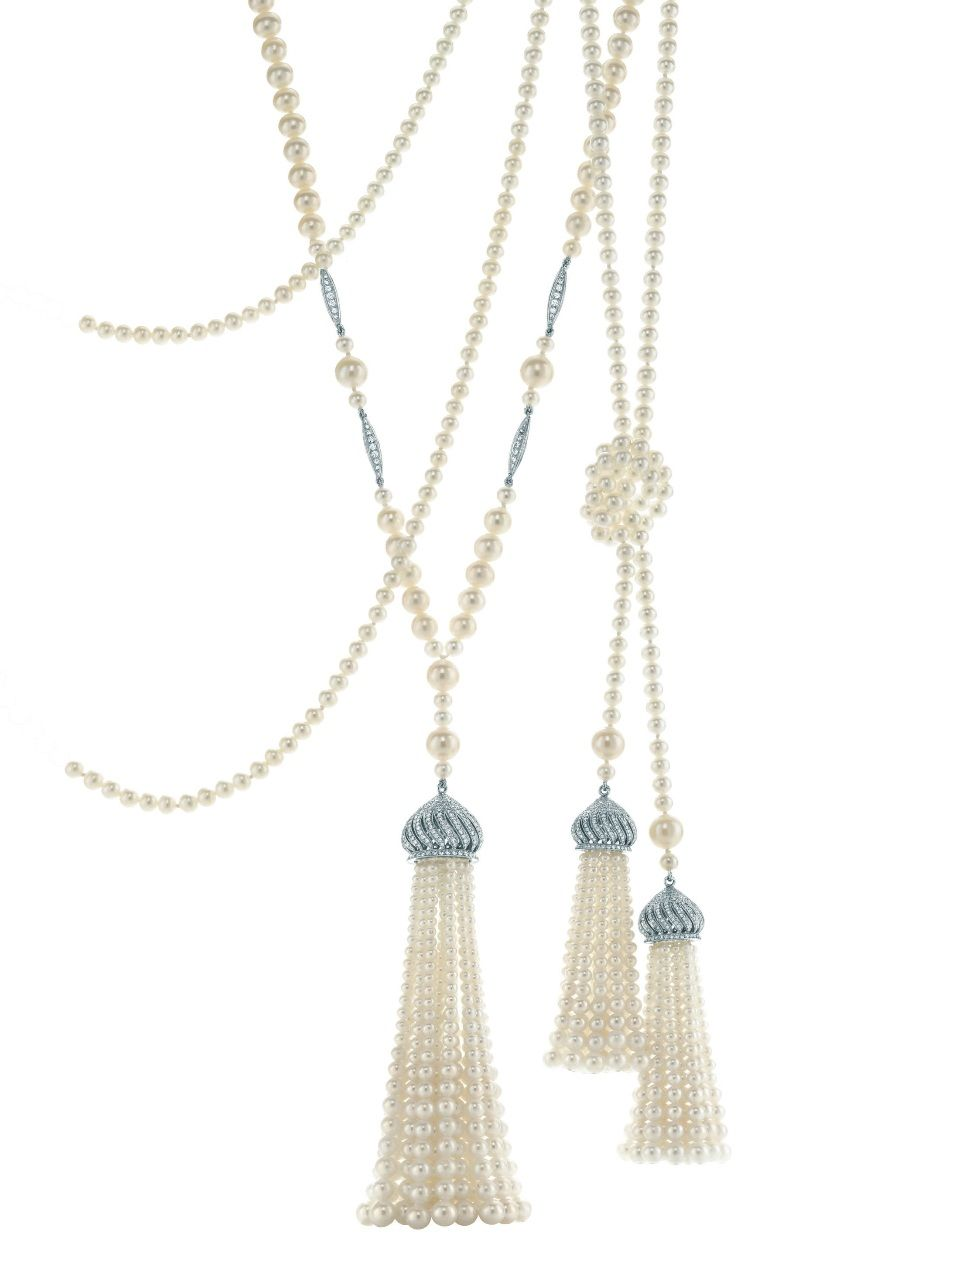 Tiffany Pearl Ropes Ziegfield Collection Great Gatsby